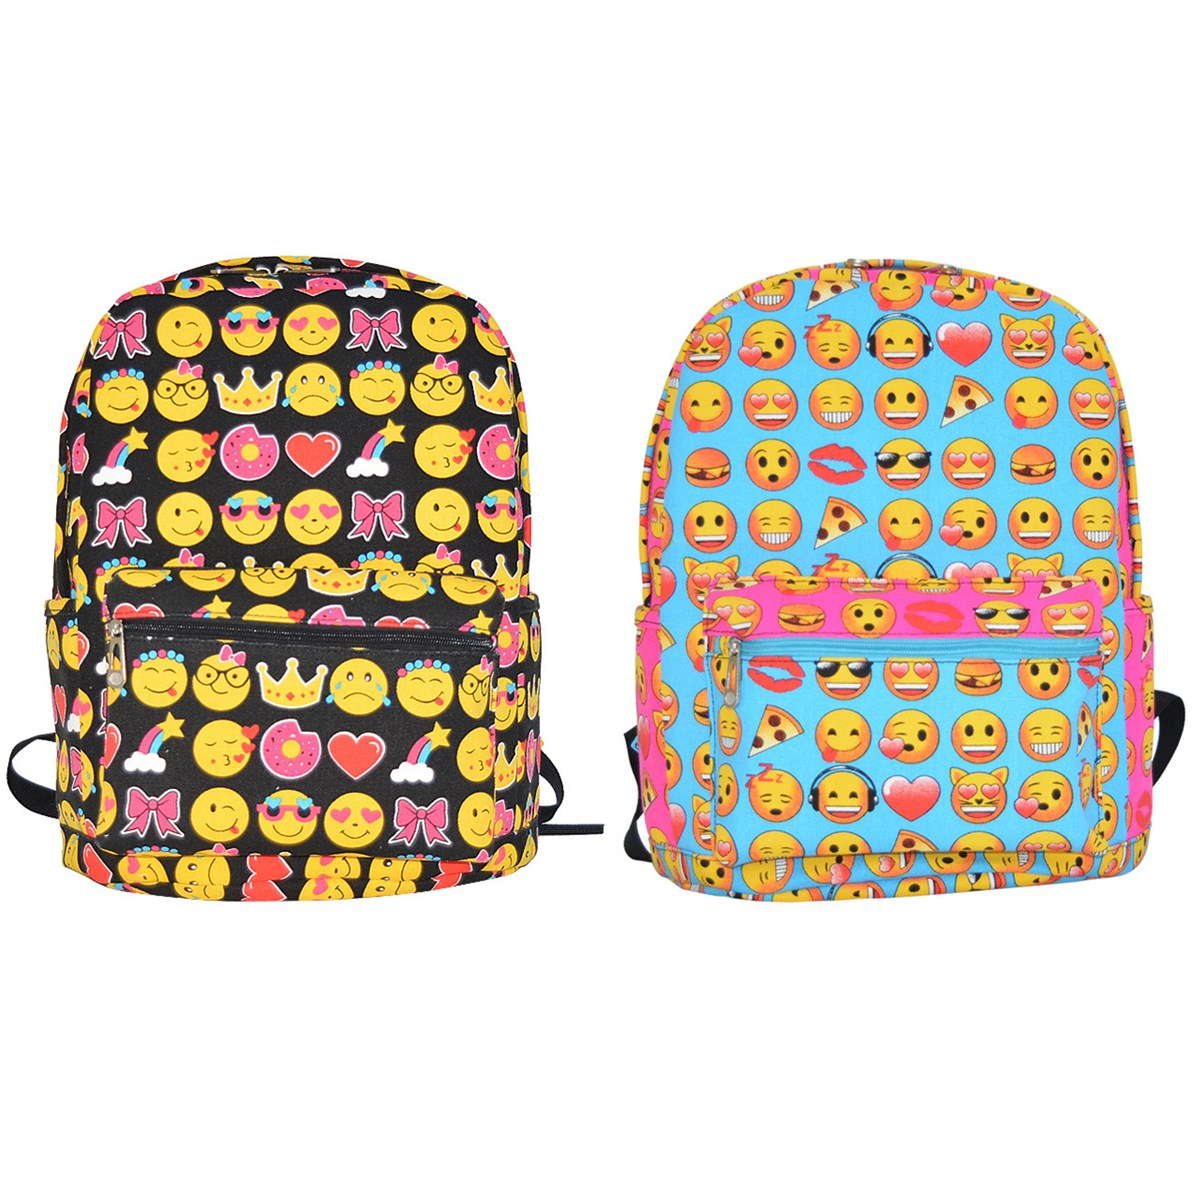 Girls Boys Childrens Kids Emoji Face Movie Cute Cartoon School Backpack Bookbag